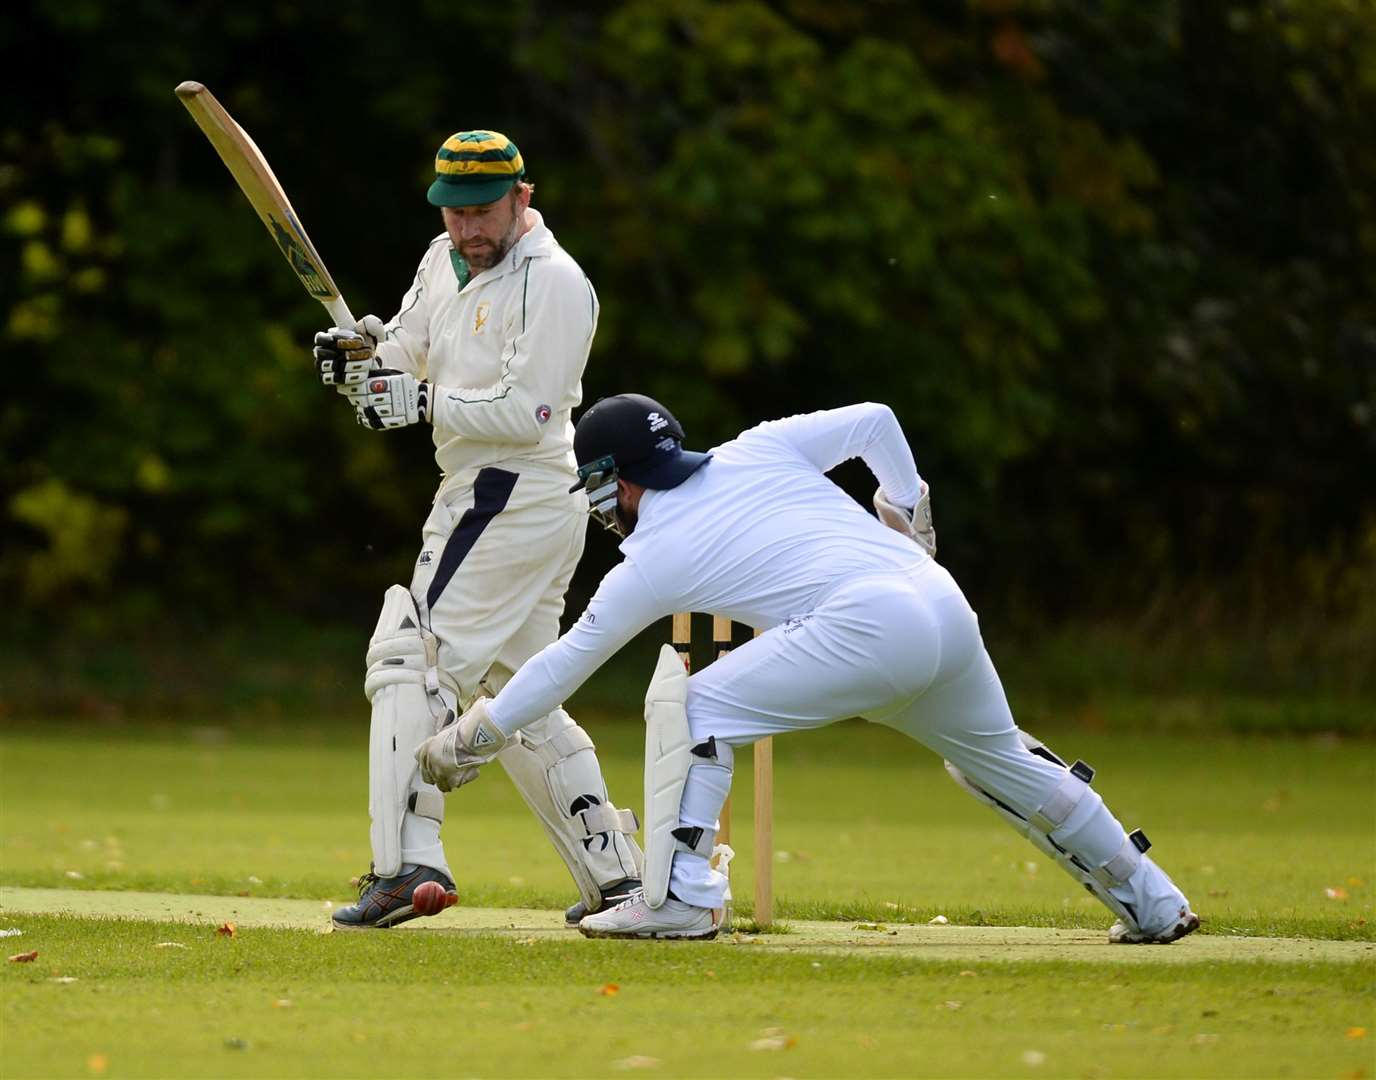 Ross County opener Duncan Scott has to be careful with Northern Counties wicket keeper Will Ford up to the stumps. Picture: Gary Anthony